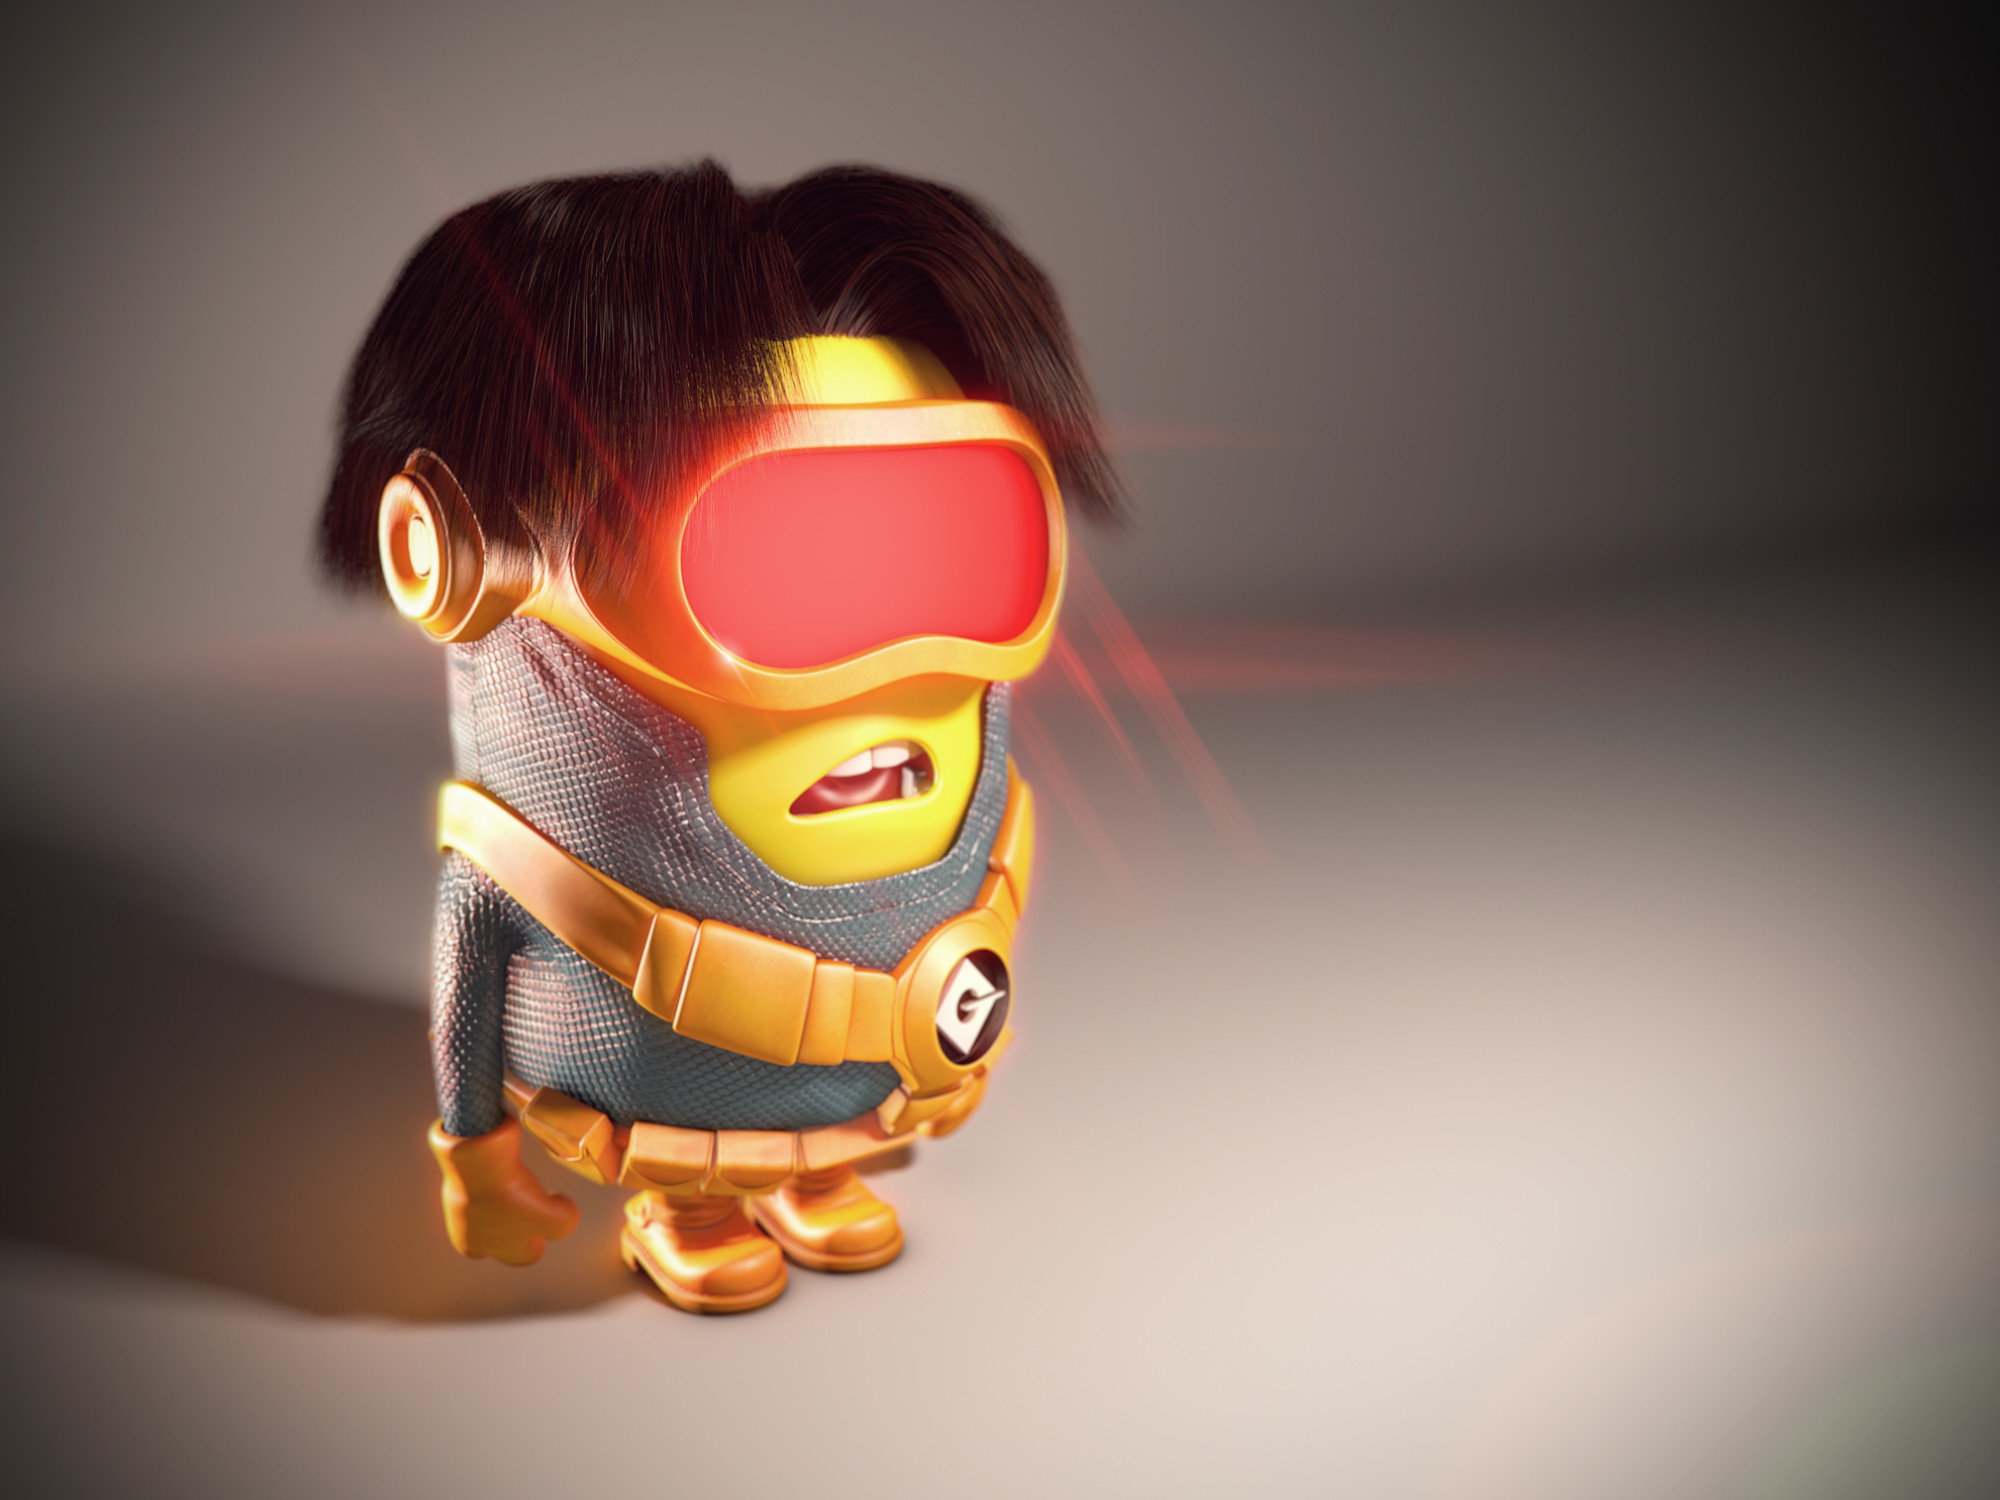 2000x1500 Despicable Me Minions Dressed Up as Pop Culture Characters - Cyclops